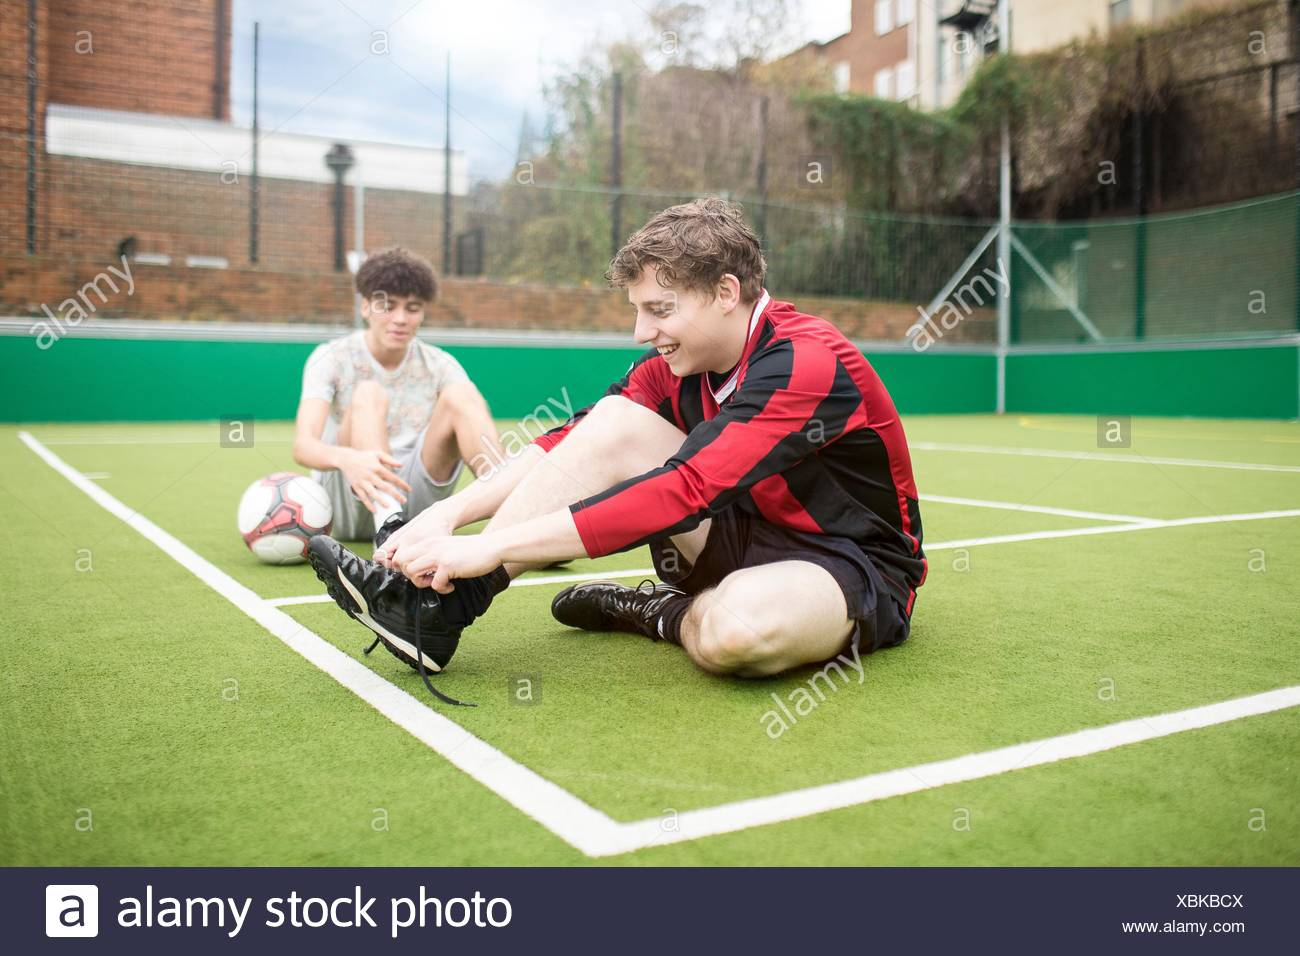 Two young men on urban football pitch, tying shoelaces - Stock Image